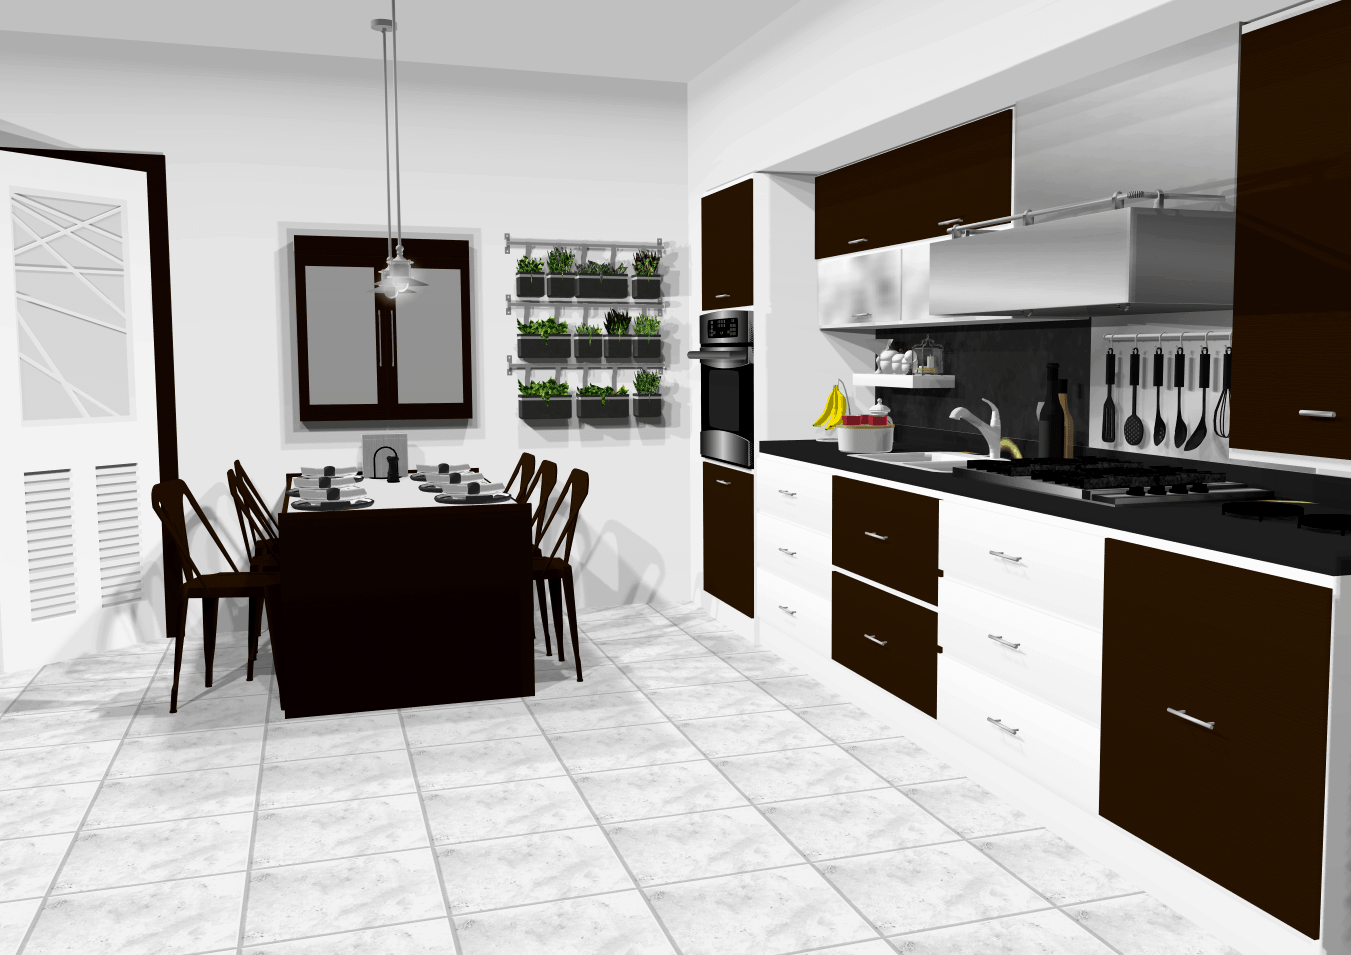 17 Best Online Kitchen Design Software Options In 2019 Free Paid - Interior-designed-kitchens